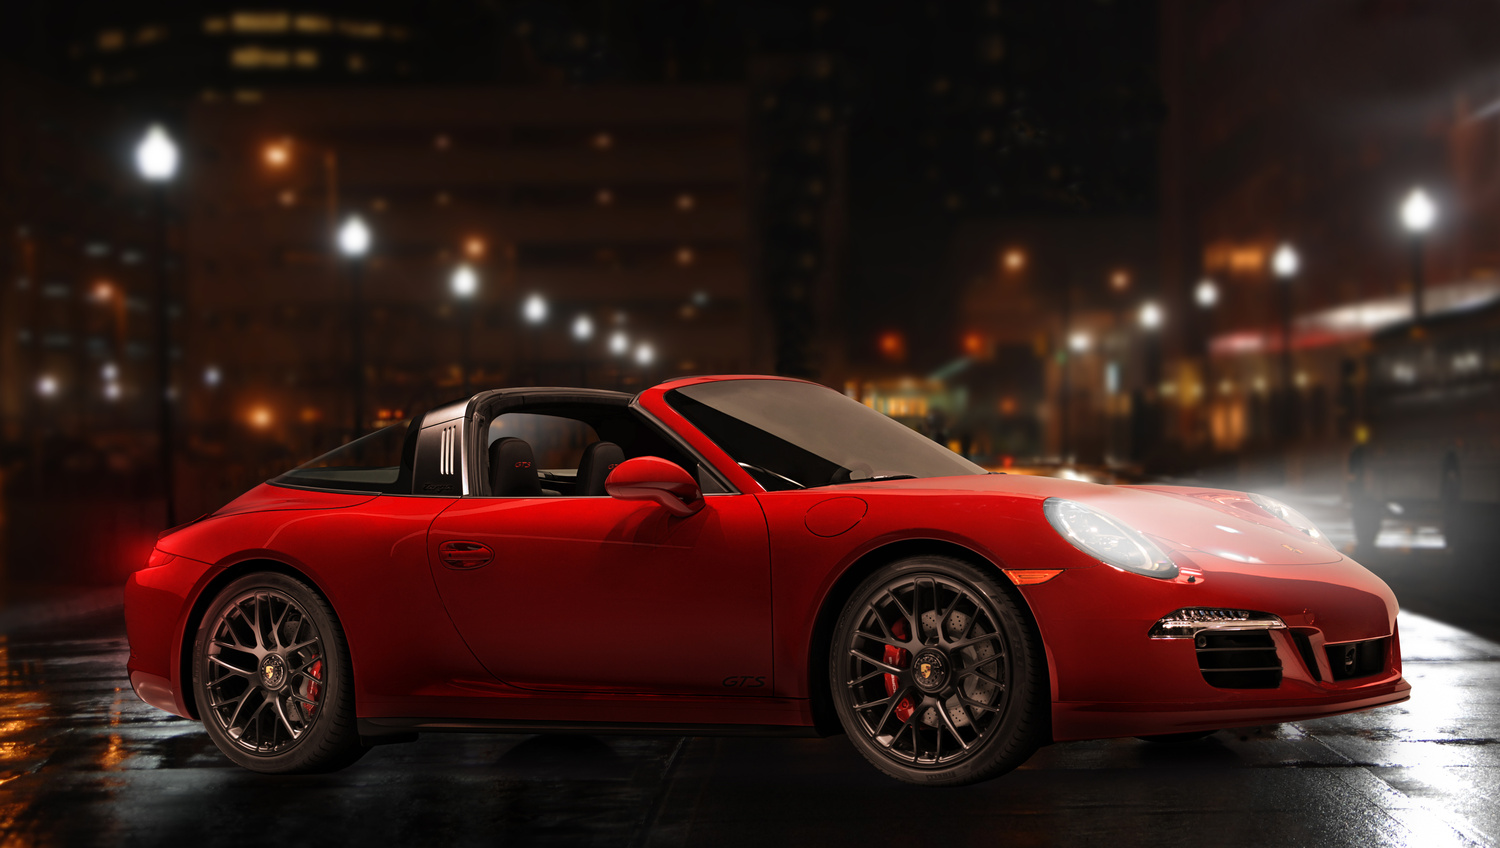 Red Porsche by andy greenwell